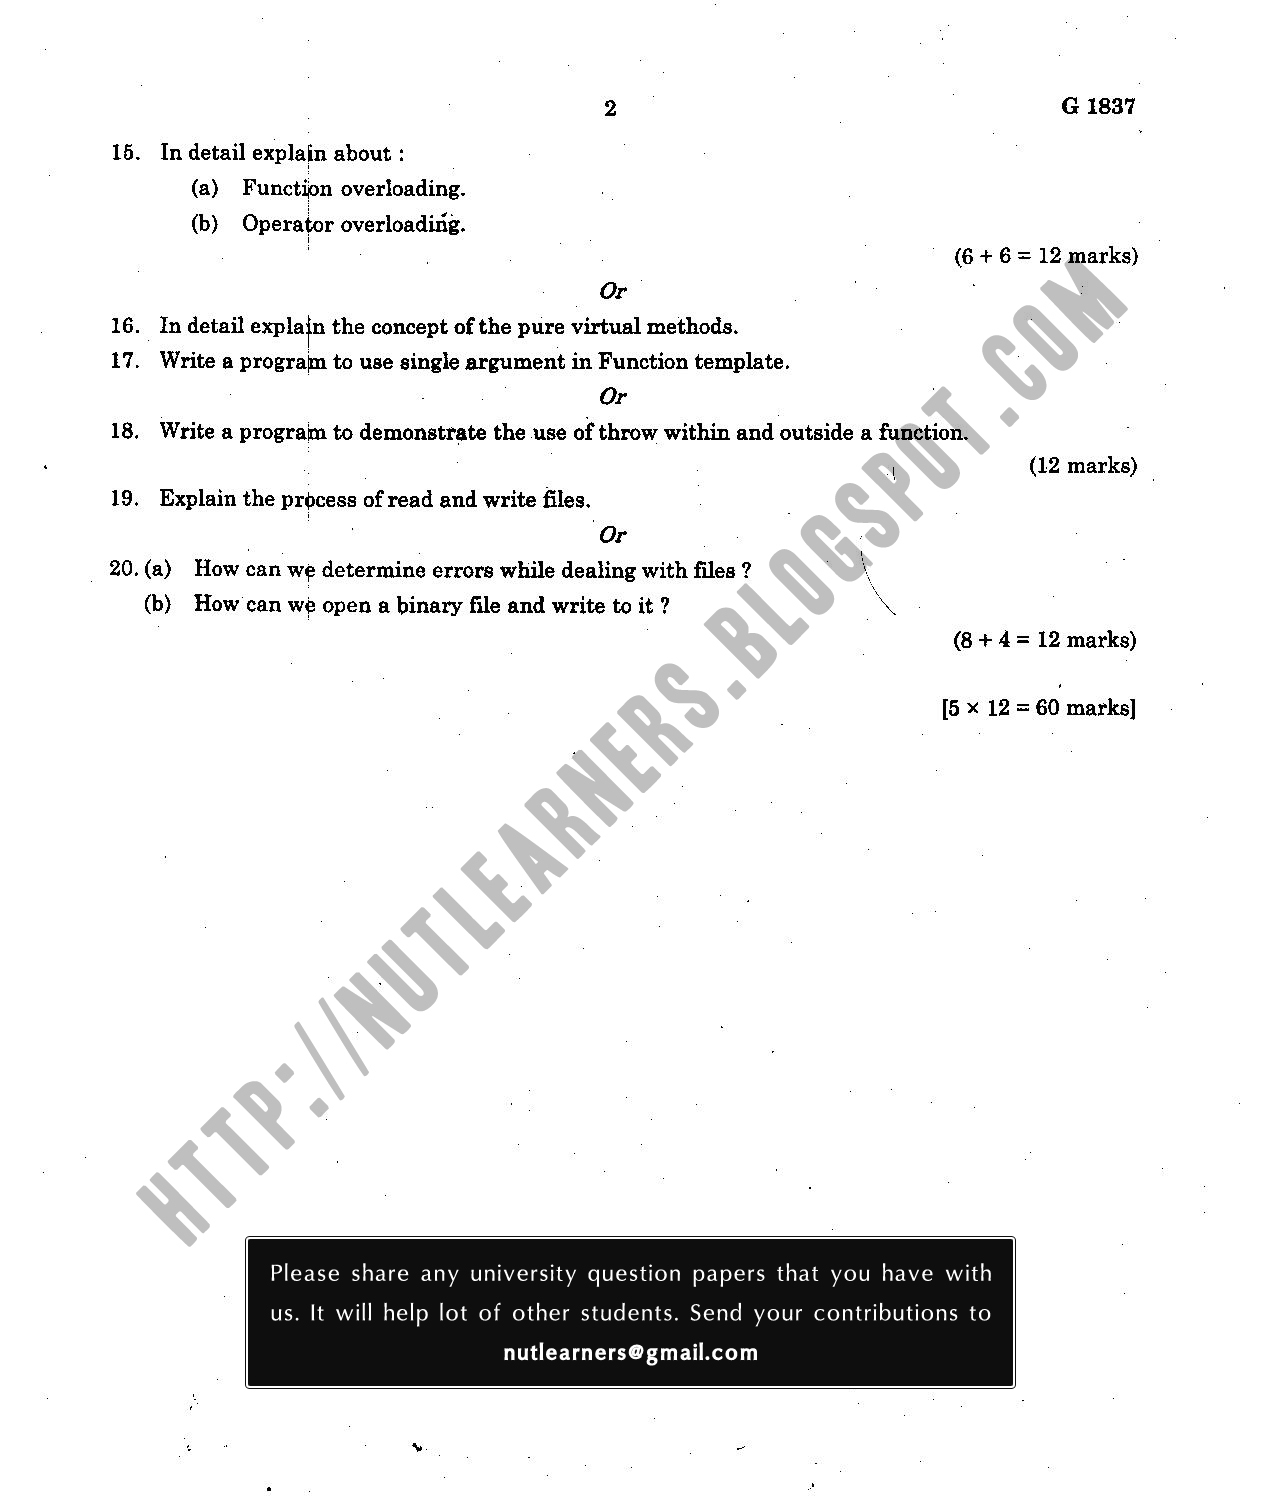 Object Oriented Programming - MG University Question Paper